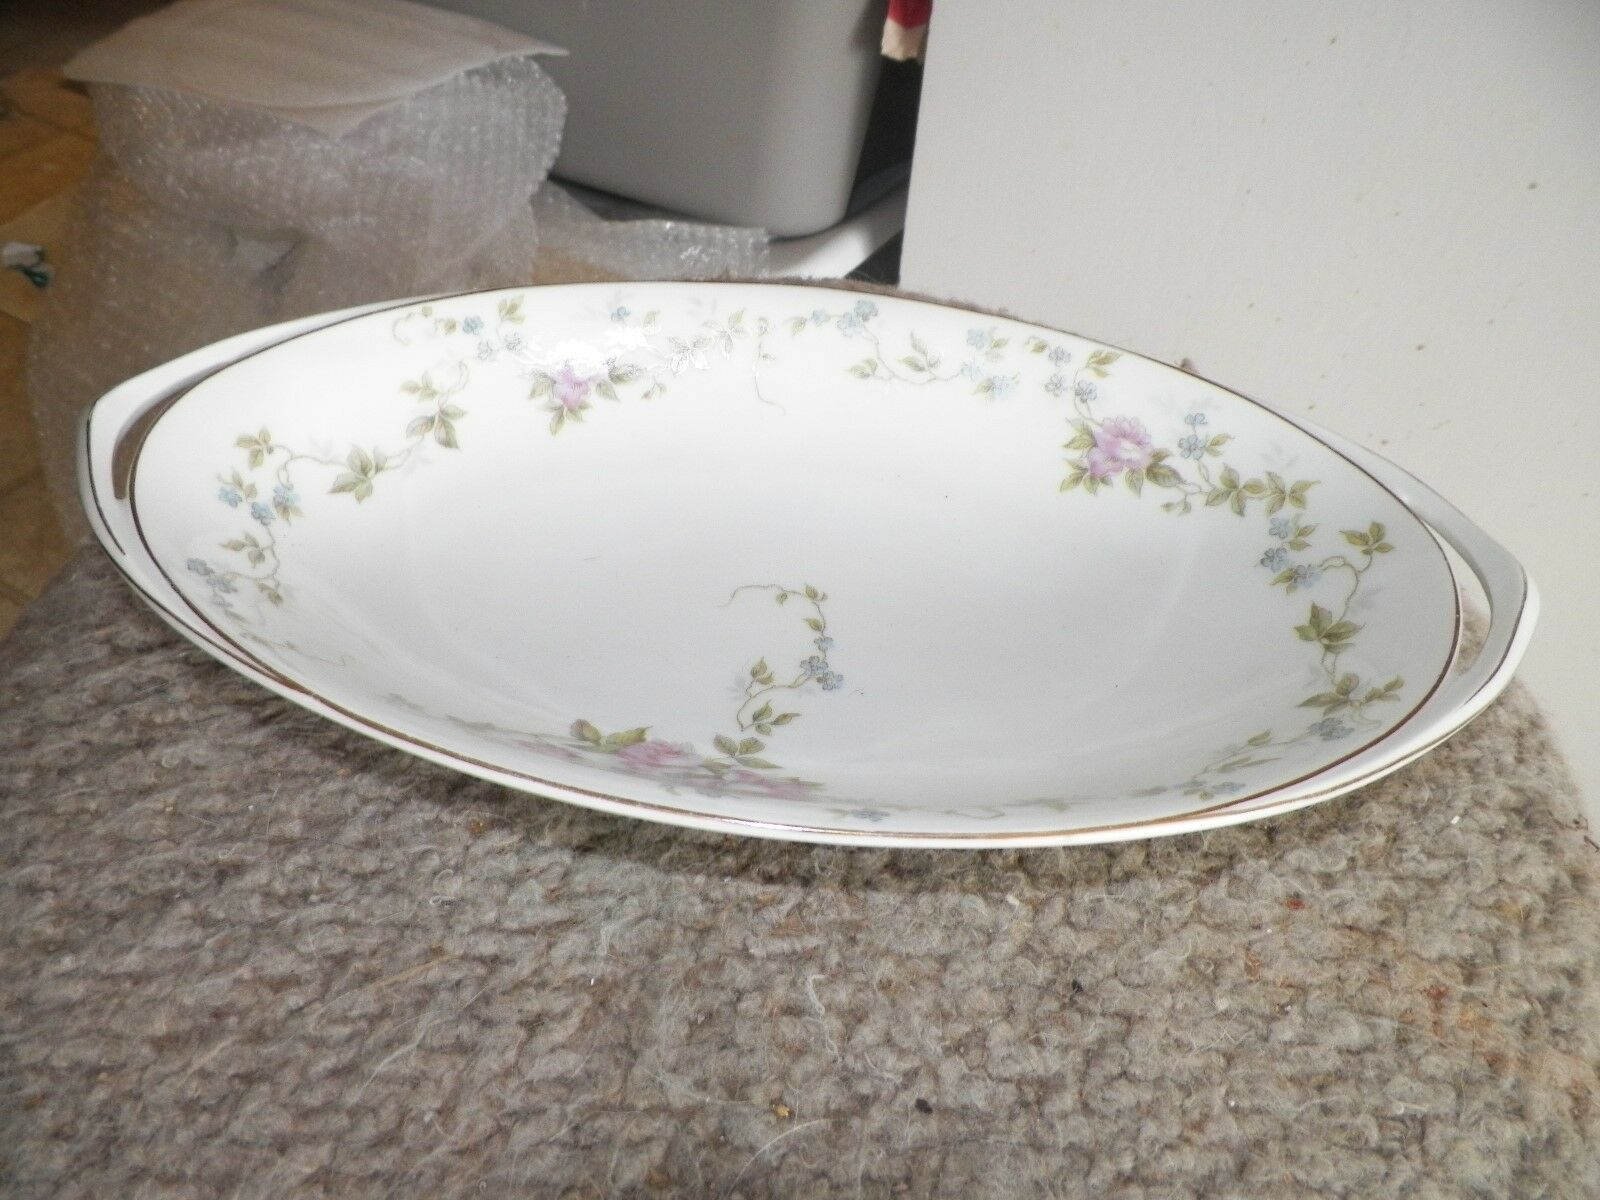 Primary image for Rosenthal-Donatello Shape 10 1/2 oval serving bowl 1 available